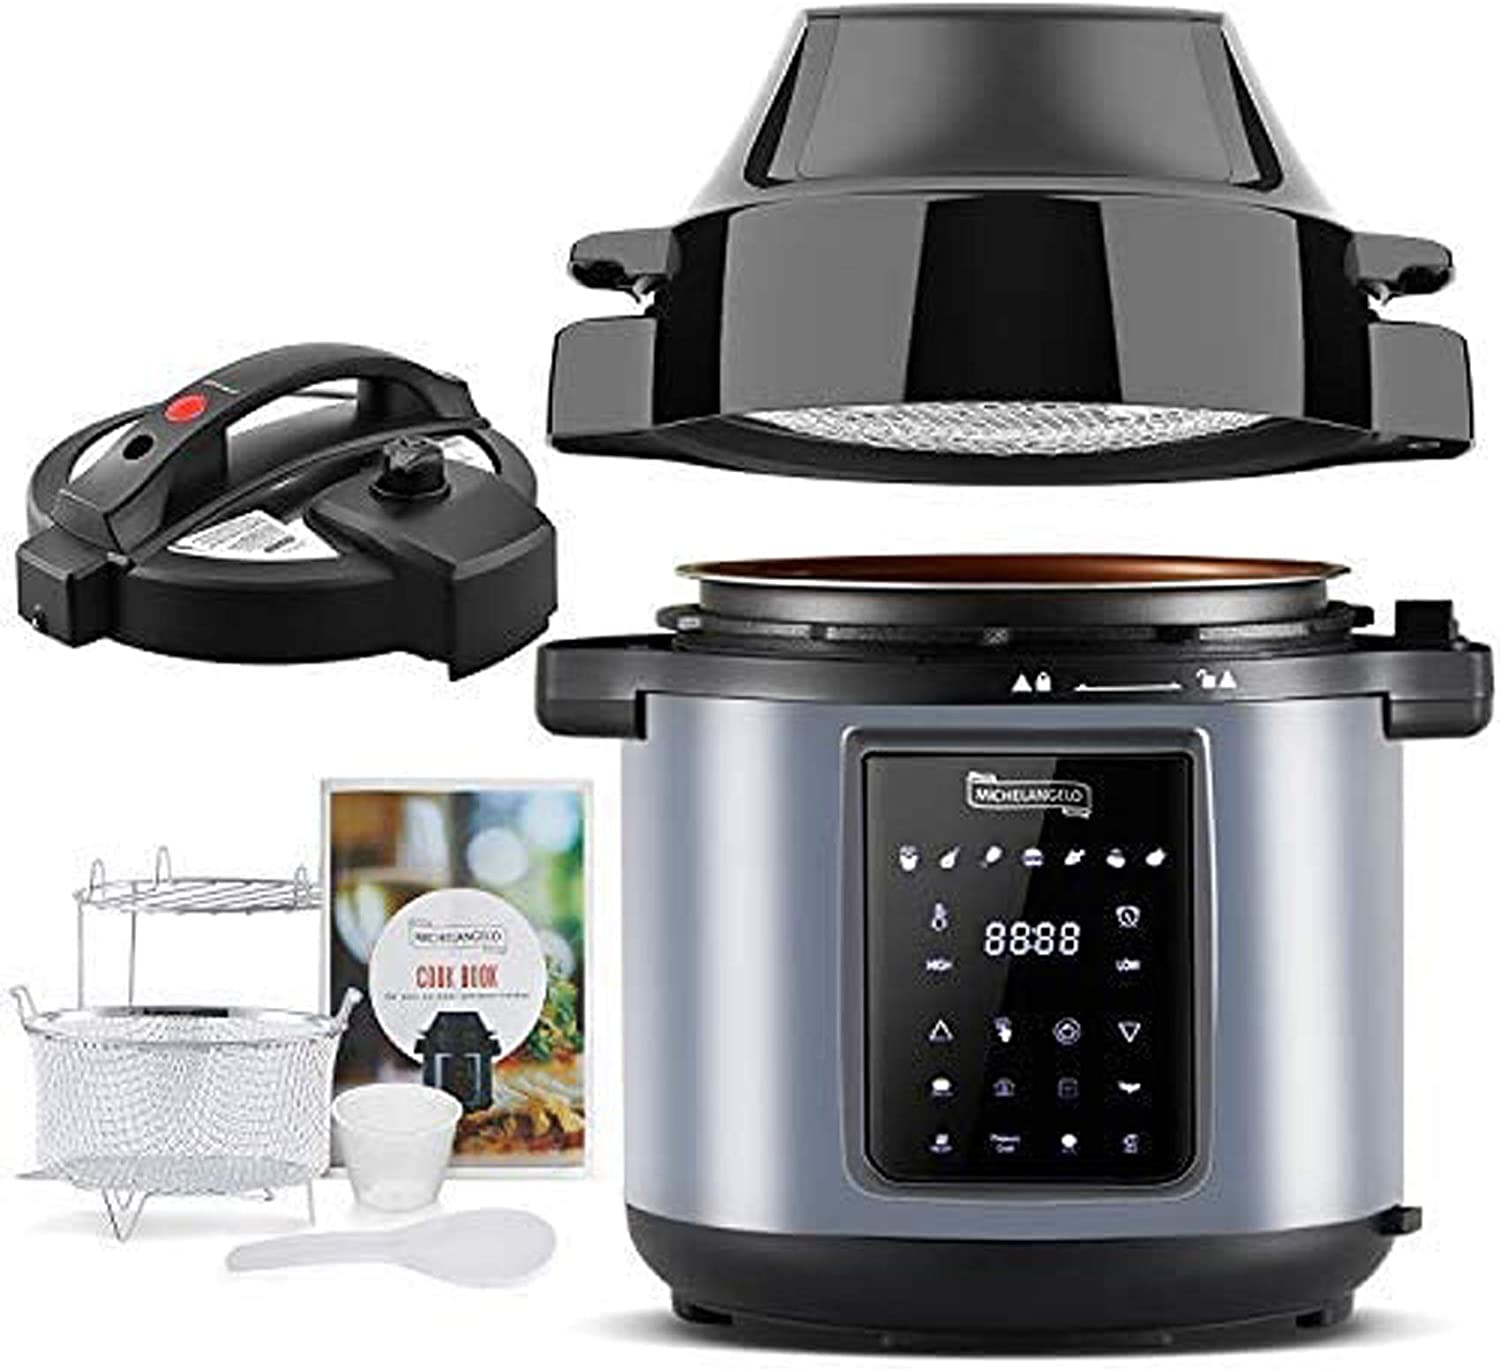 Amazon Com Michelangelo 6 Qt Pressure Cooker Air Fryer Combo All In 1 Pressure Cooker With Air Fryer Two Detachable Lids For Pressure Cooker Pressure Fryer Air Fryer Rice Slow Cooker Steamer Warmer